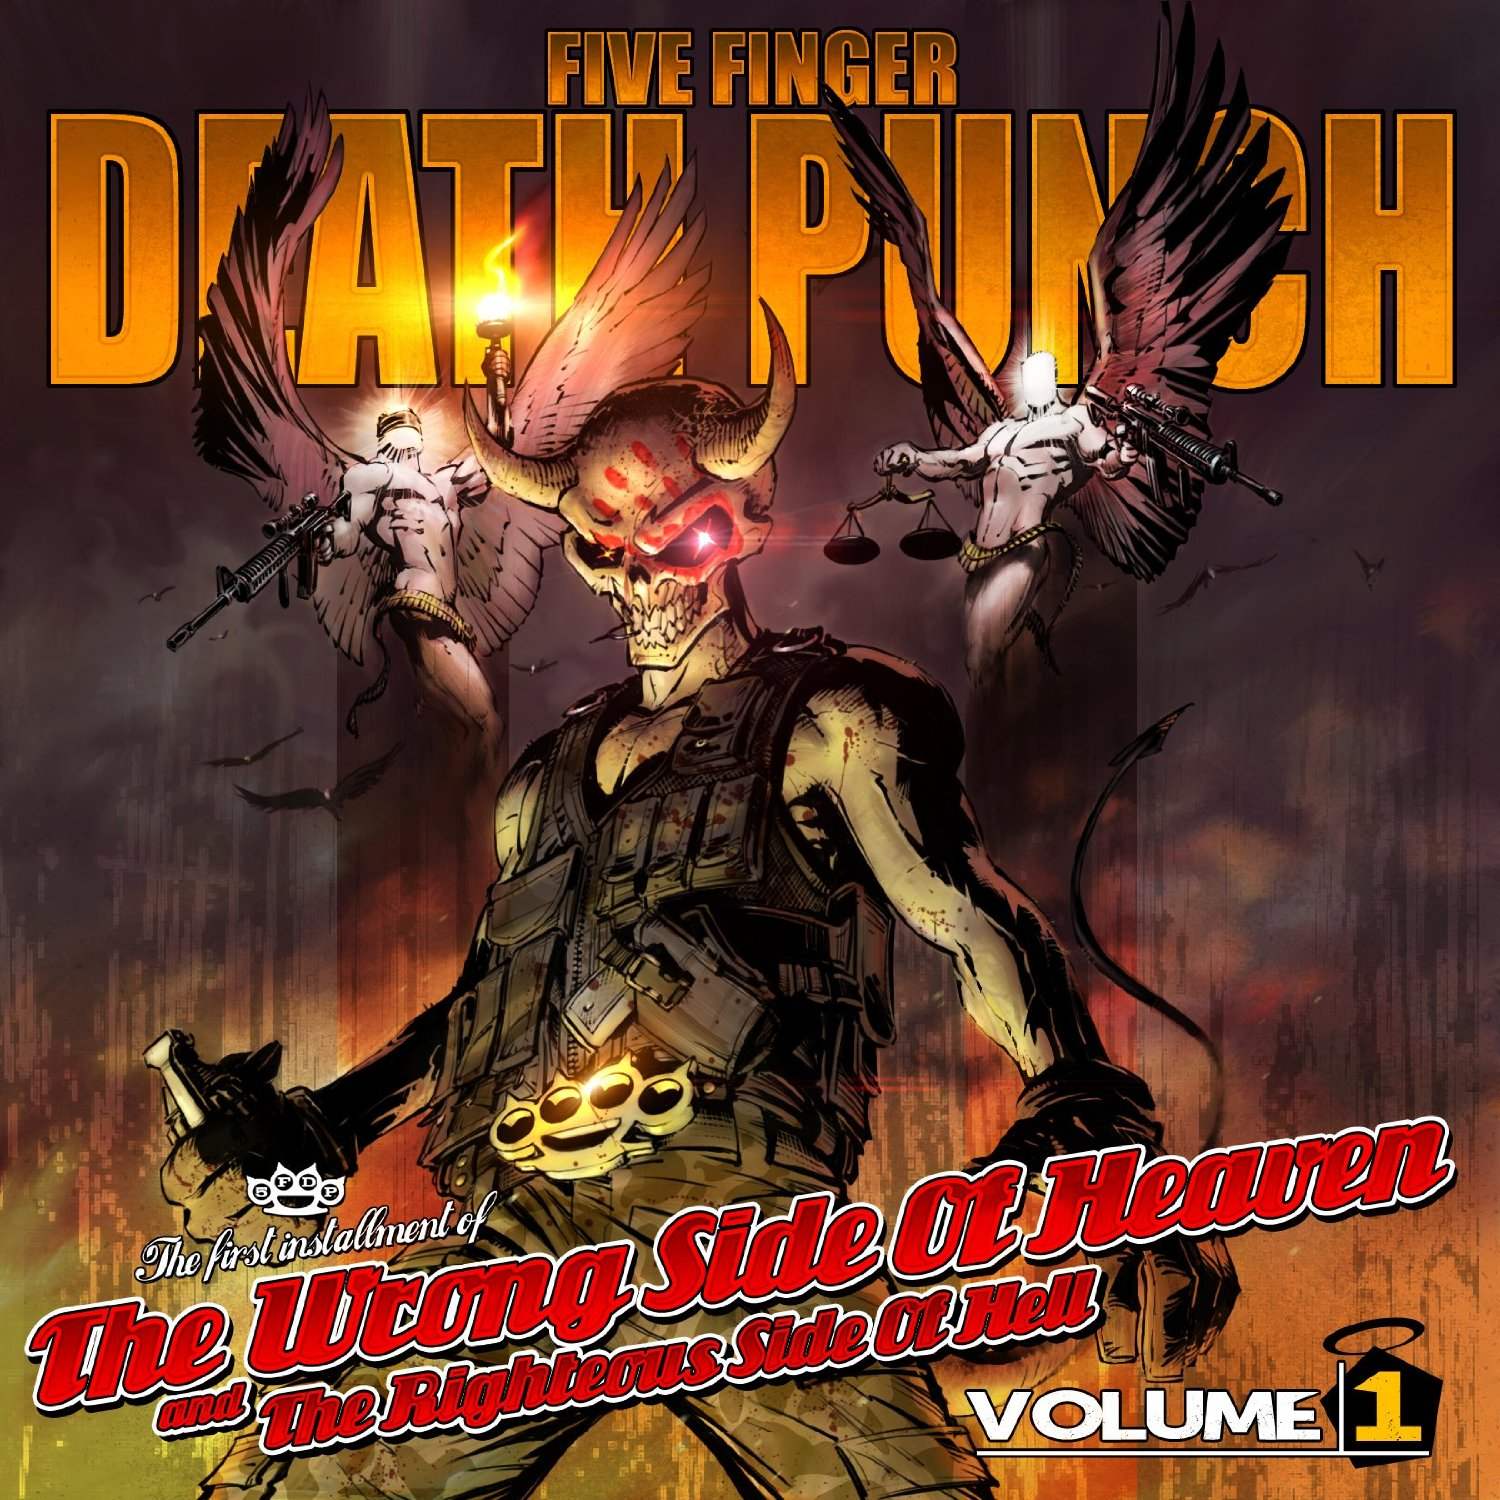 Five Finger Death Punch Burn MF cover art